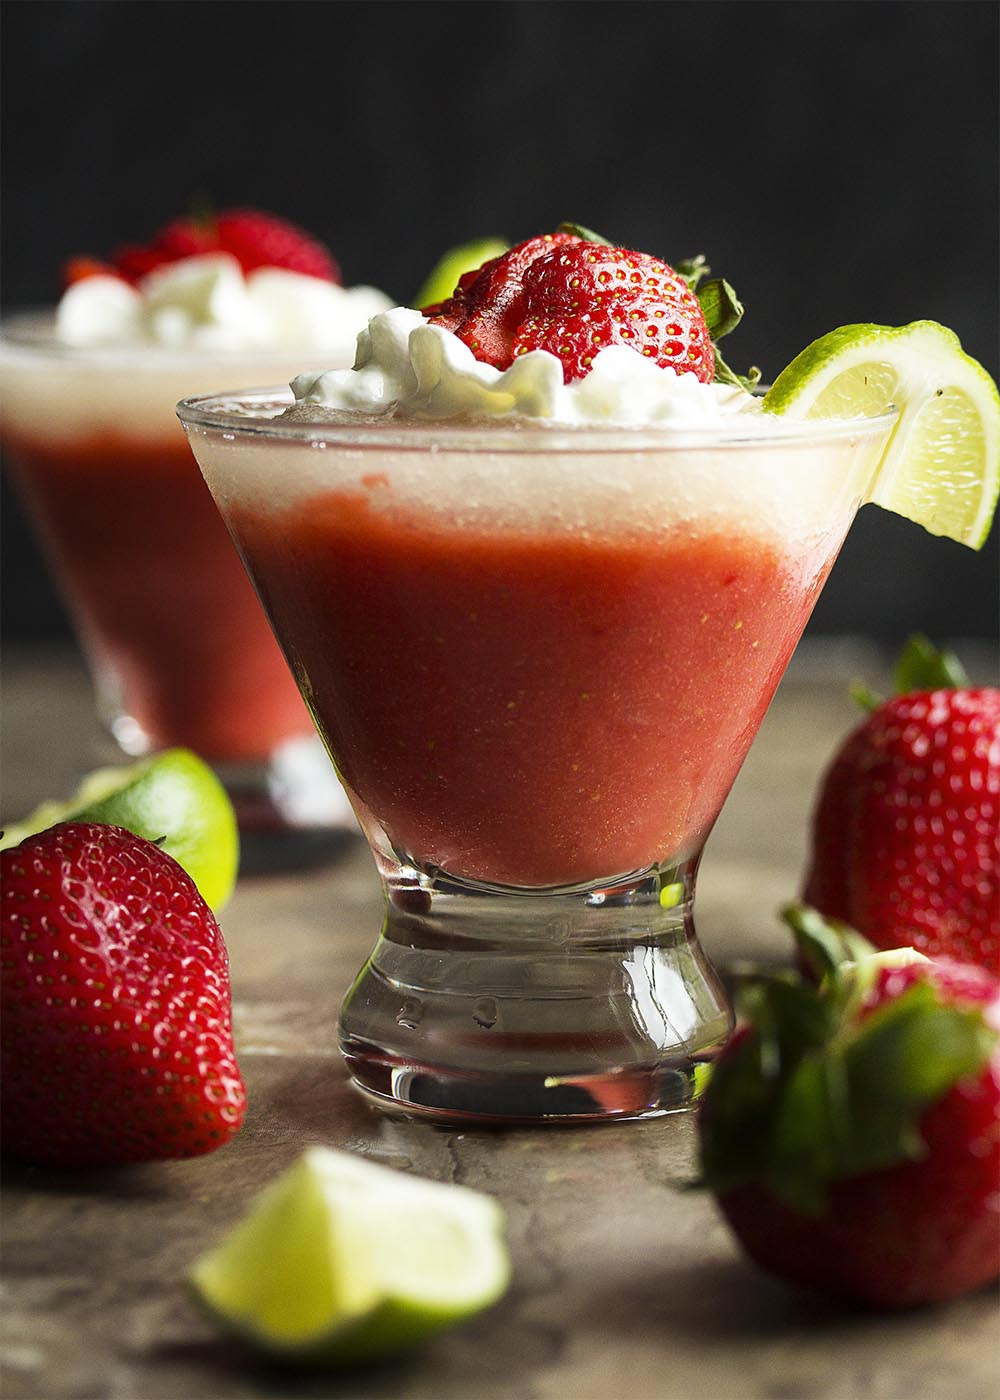 Layered Frozen Strawberry Lime Daiquiri - This frozen strawberry daiquiri is all about intense fruit flavor from frozen strawberries pureed with rum and lime juice. For an extra festive touch make some lime daiquiri too and layer it on top of the strawberry daiquiri. | justalittlebitofbacon.com